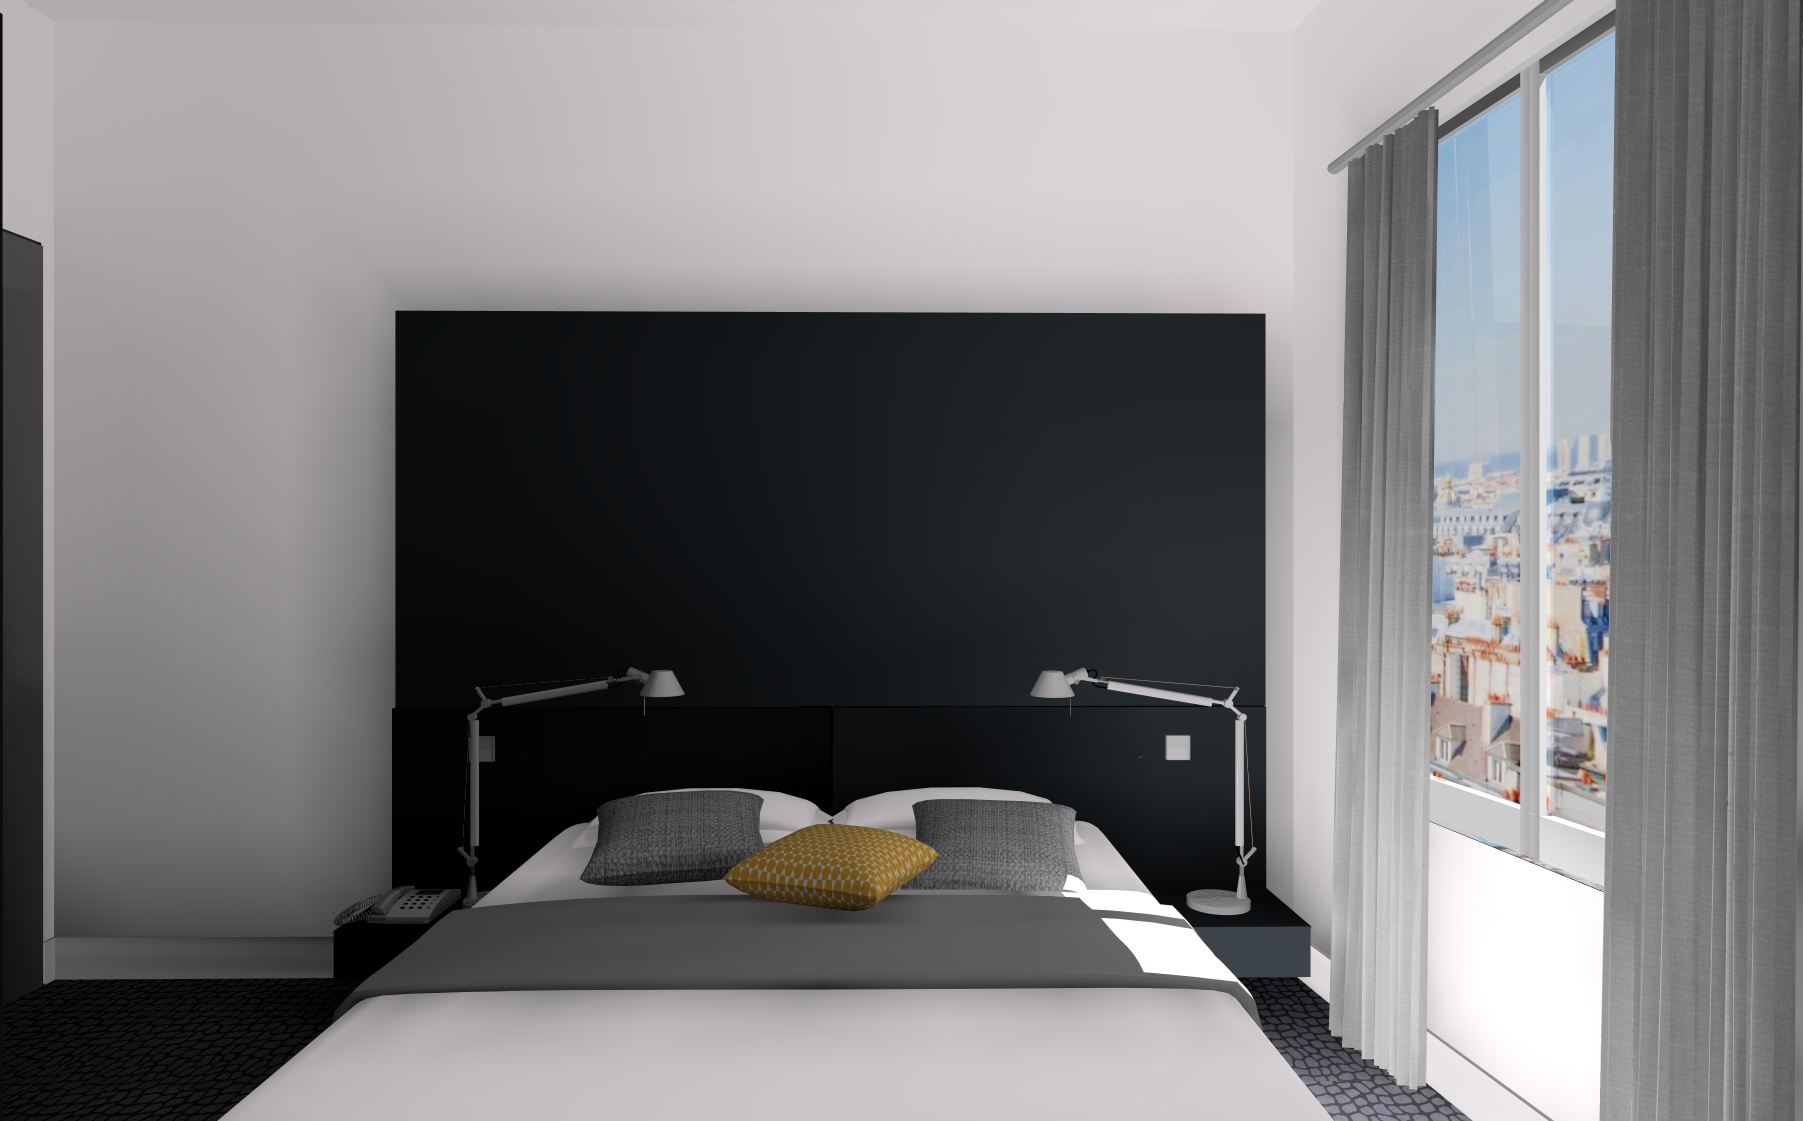 architectes et d coratrices pour vos simulations 3d pensez la sous traitance. Black Bedroom Furniture Sets. Home Design Ideas